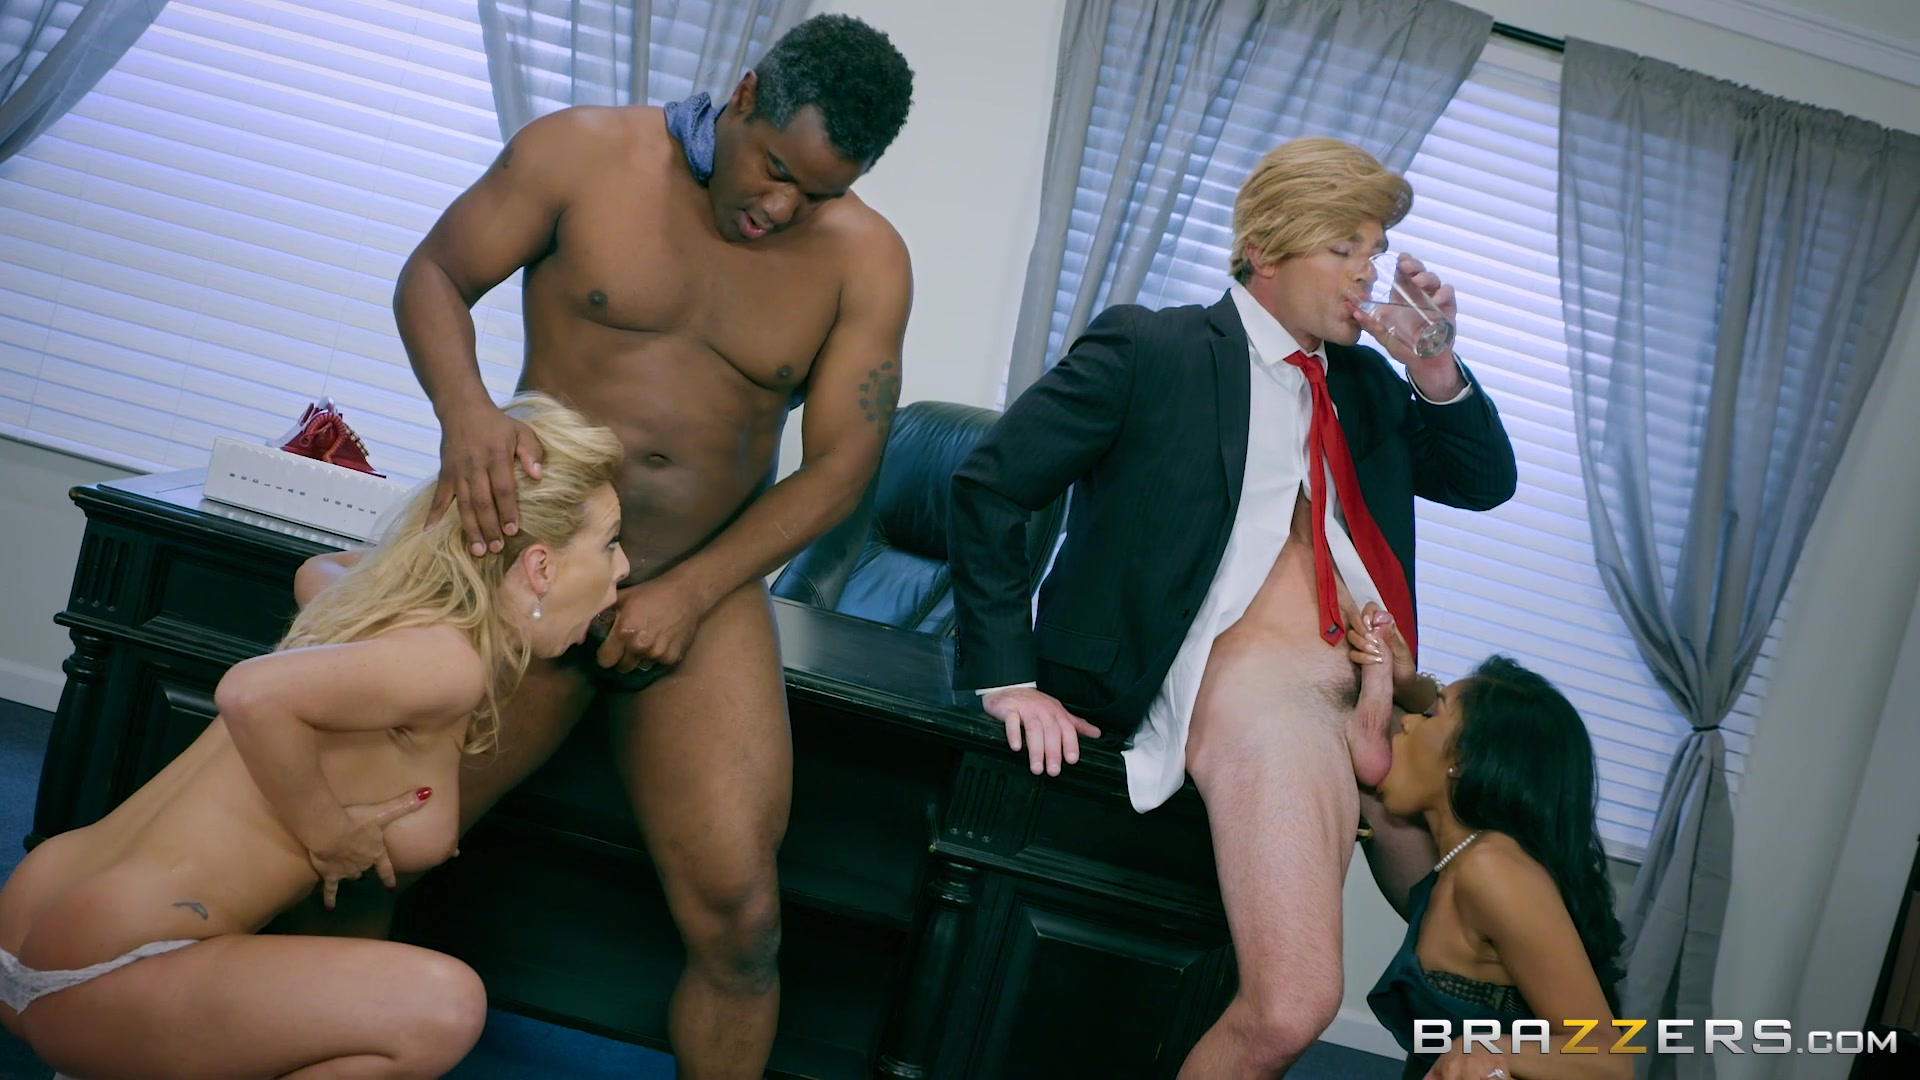 Blonde Beauty Cherie DeVille and Black Babe Yasmine DeLeon Enjoy Big Dicks on th... Starring: Cherie DeVille Yasmine DeLeon Length: 41 min